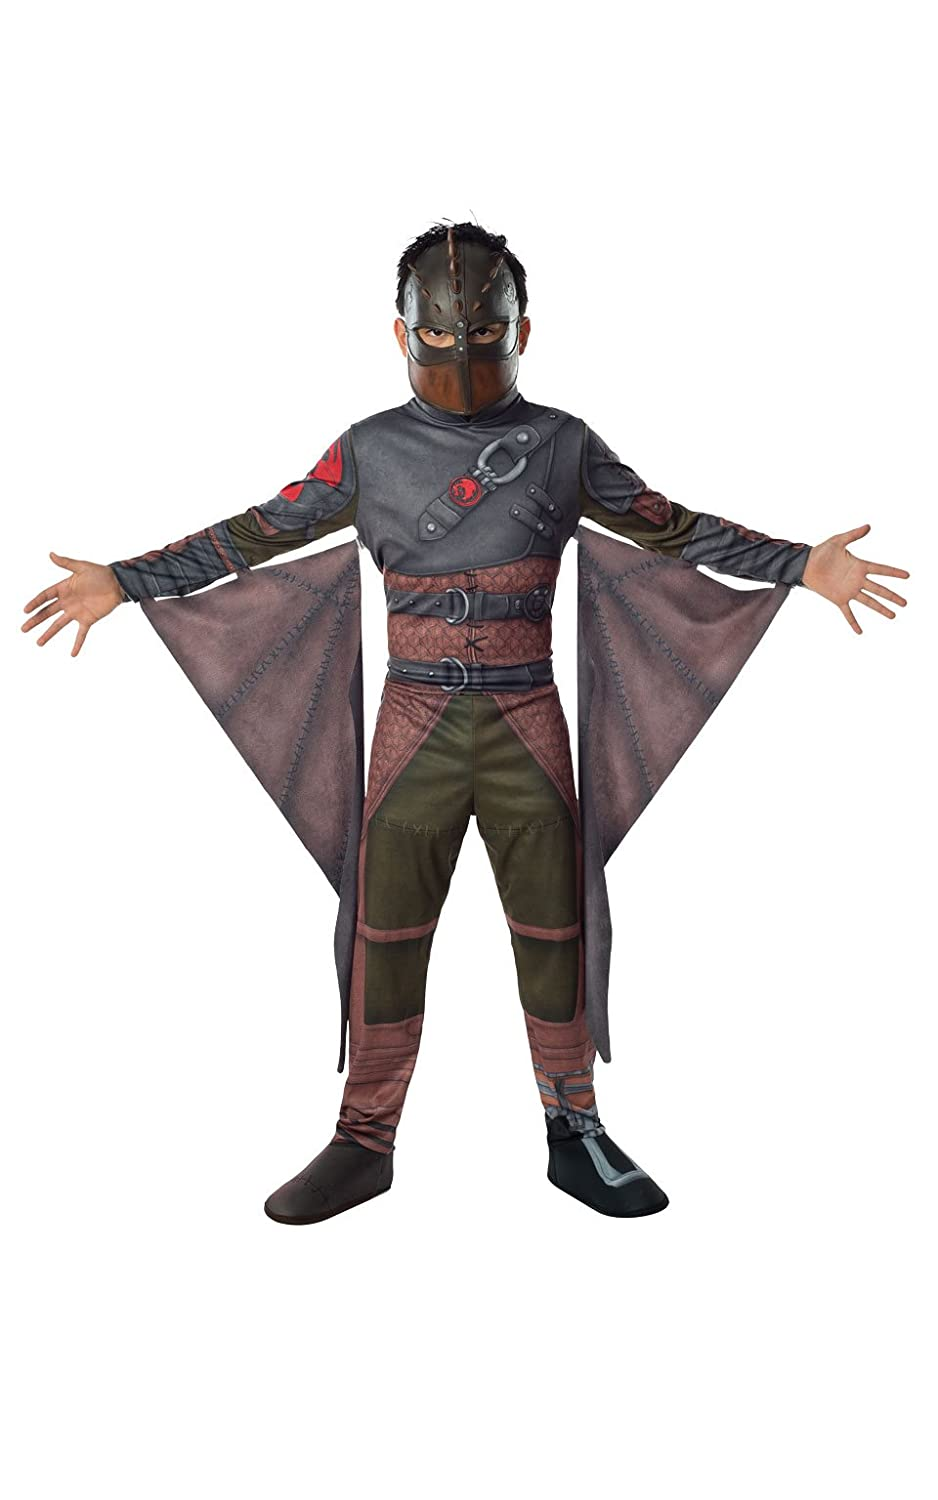 Amazon.com: Rubies How to Train Your Dragon 2 Hiccup Costume, Child Medium: Toys & Games